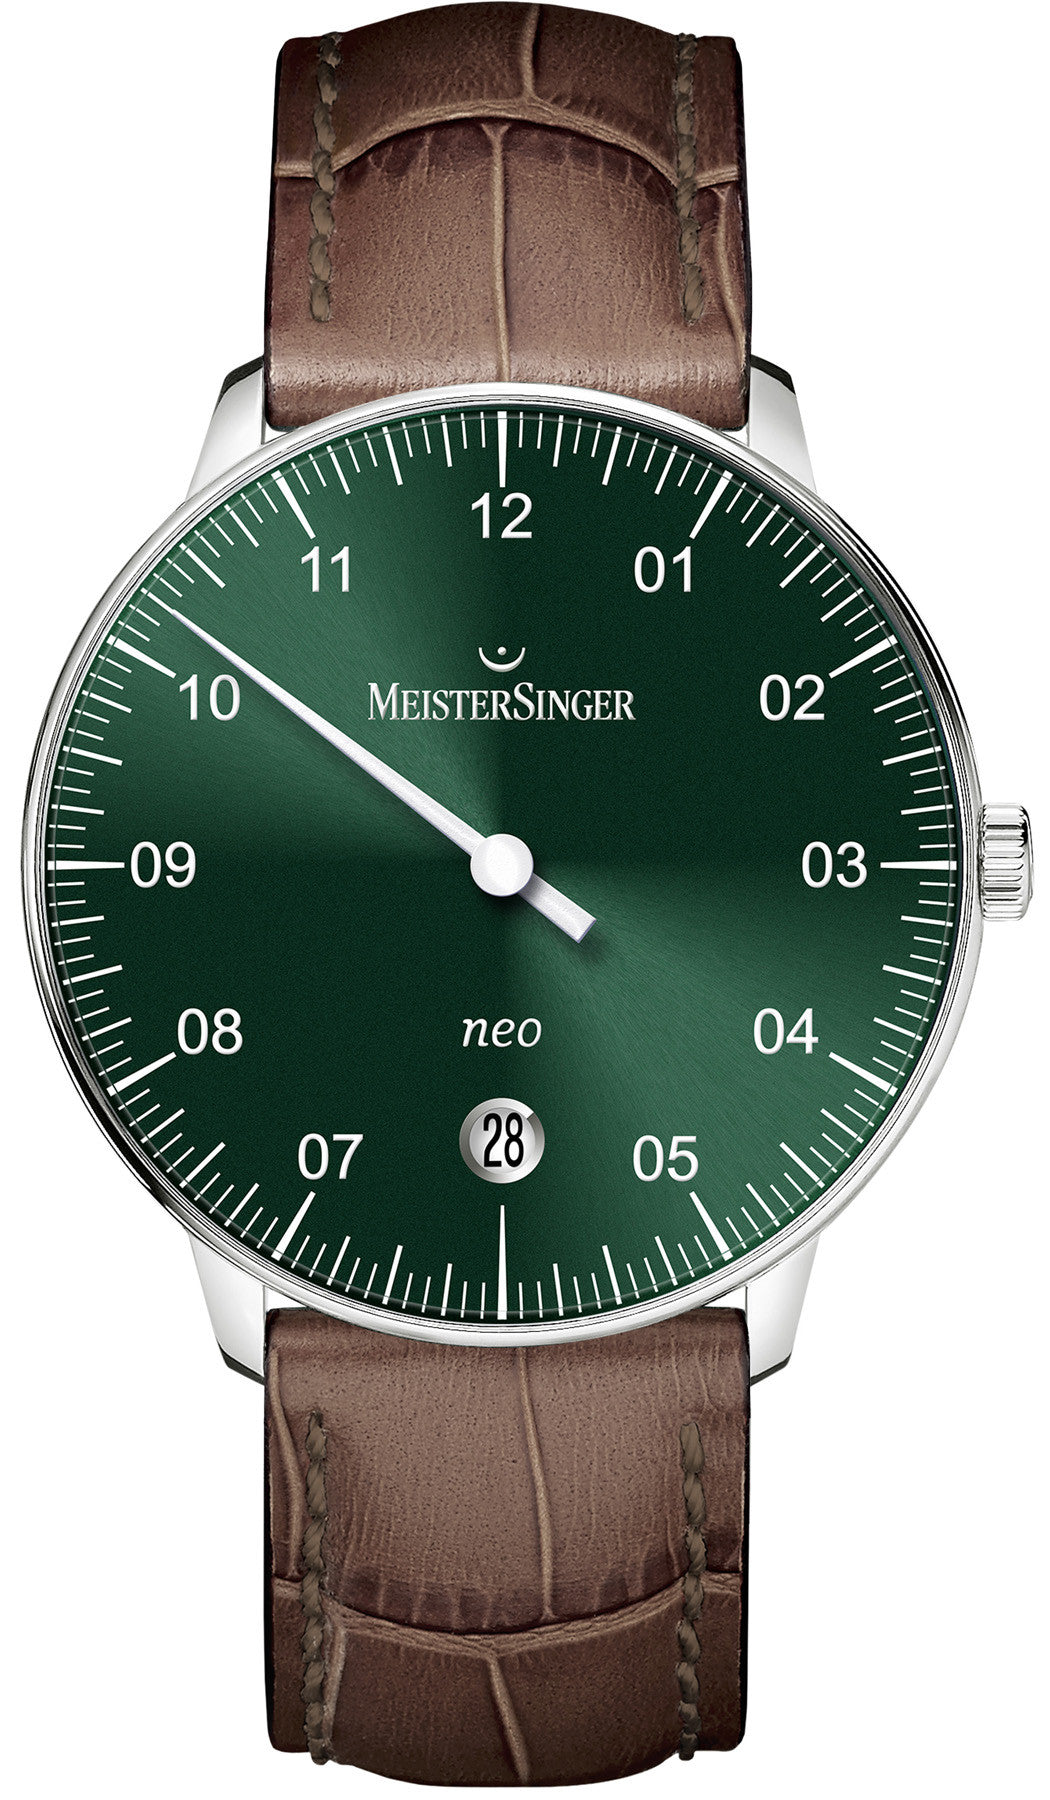 MeisterSinger Watch Neo Sunburst Green